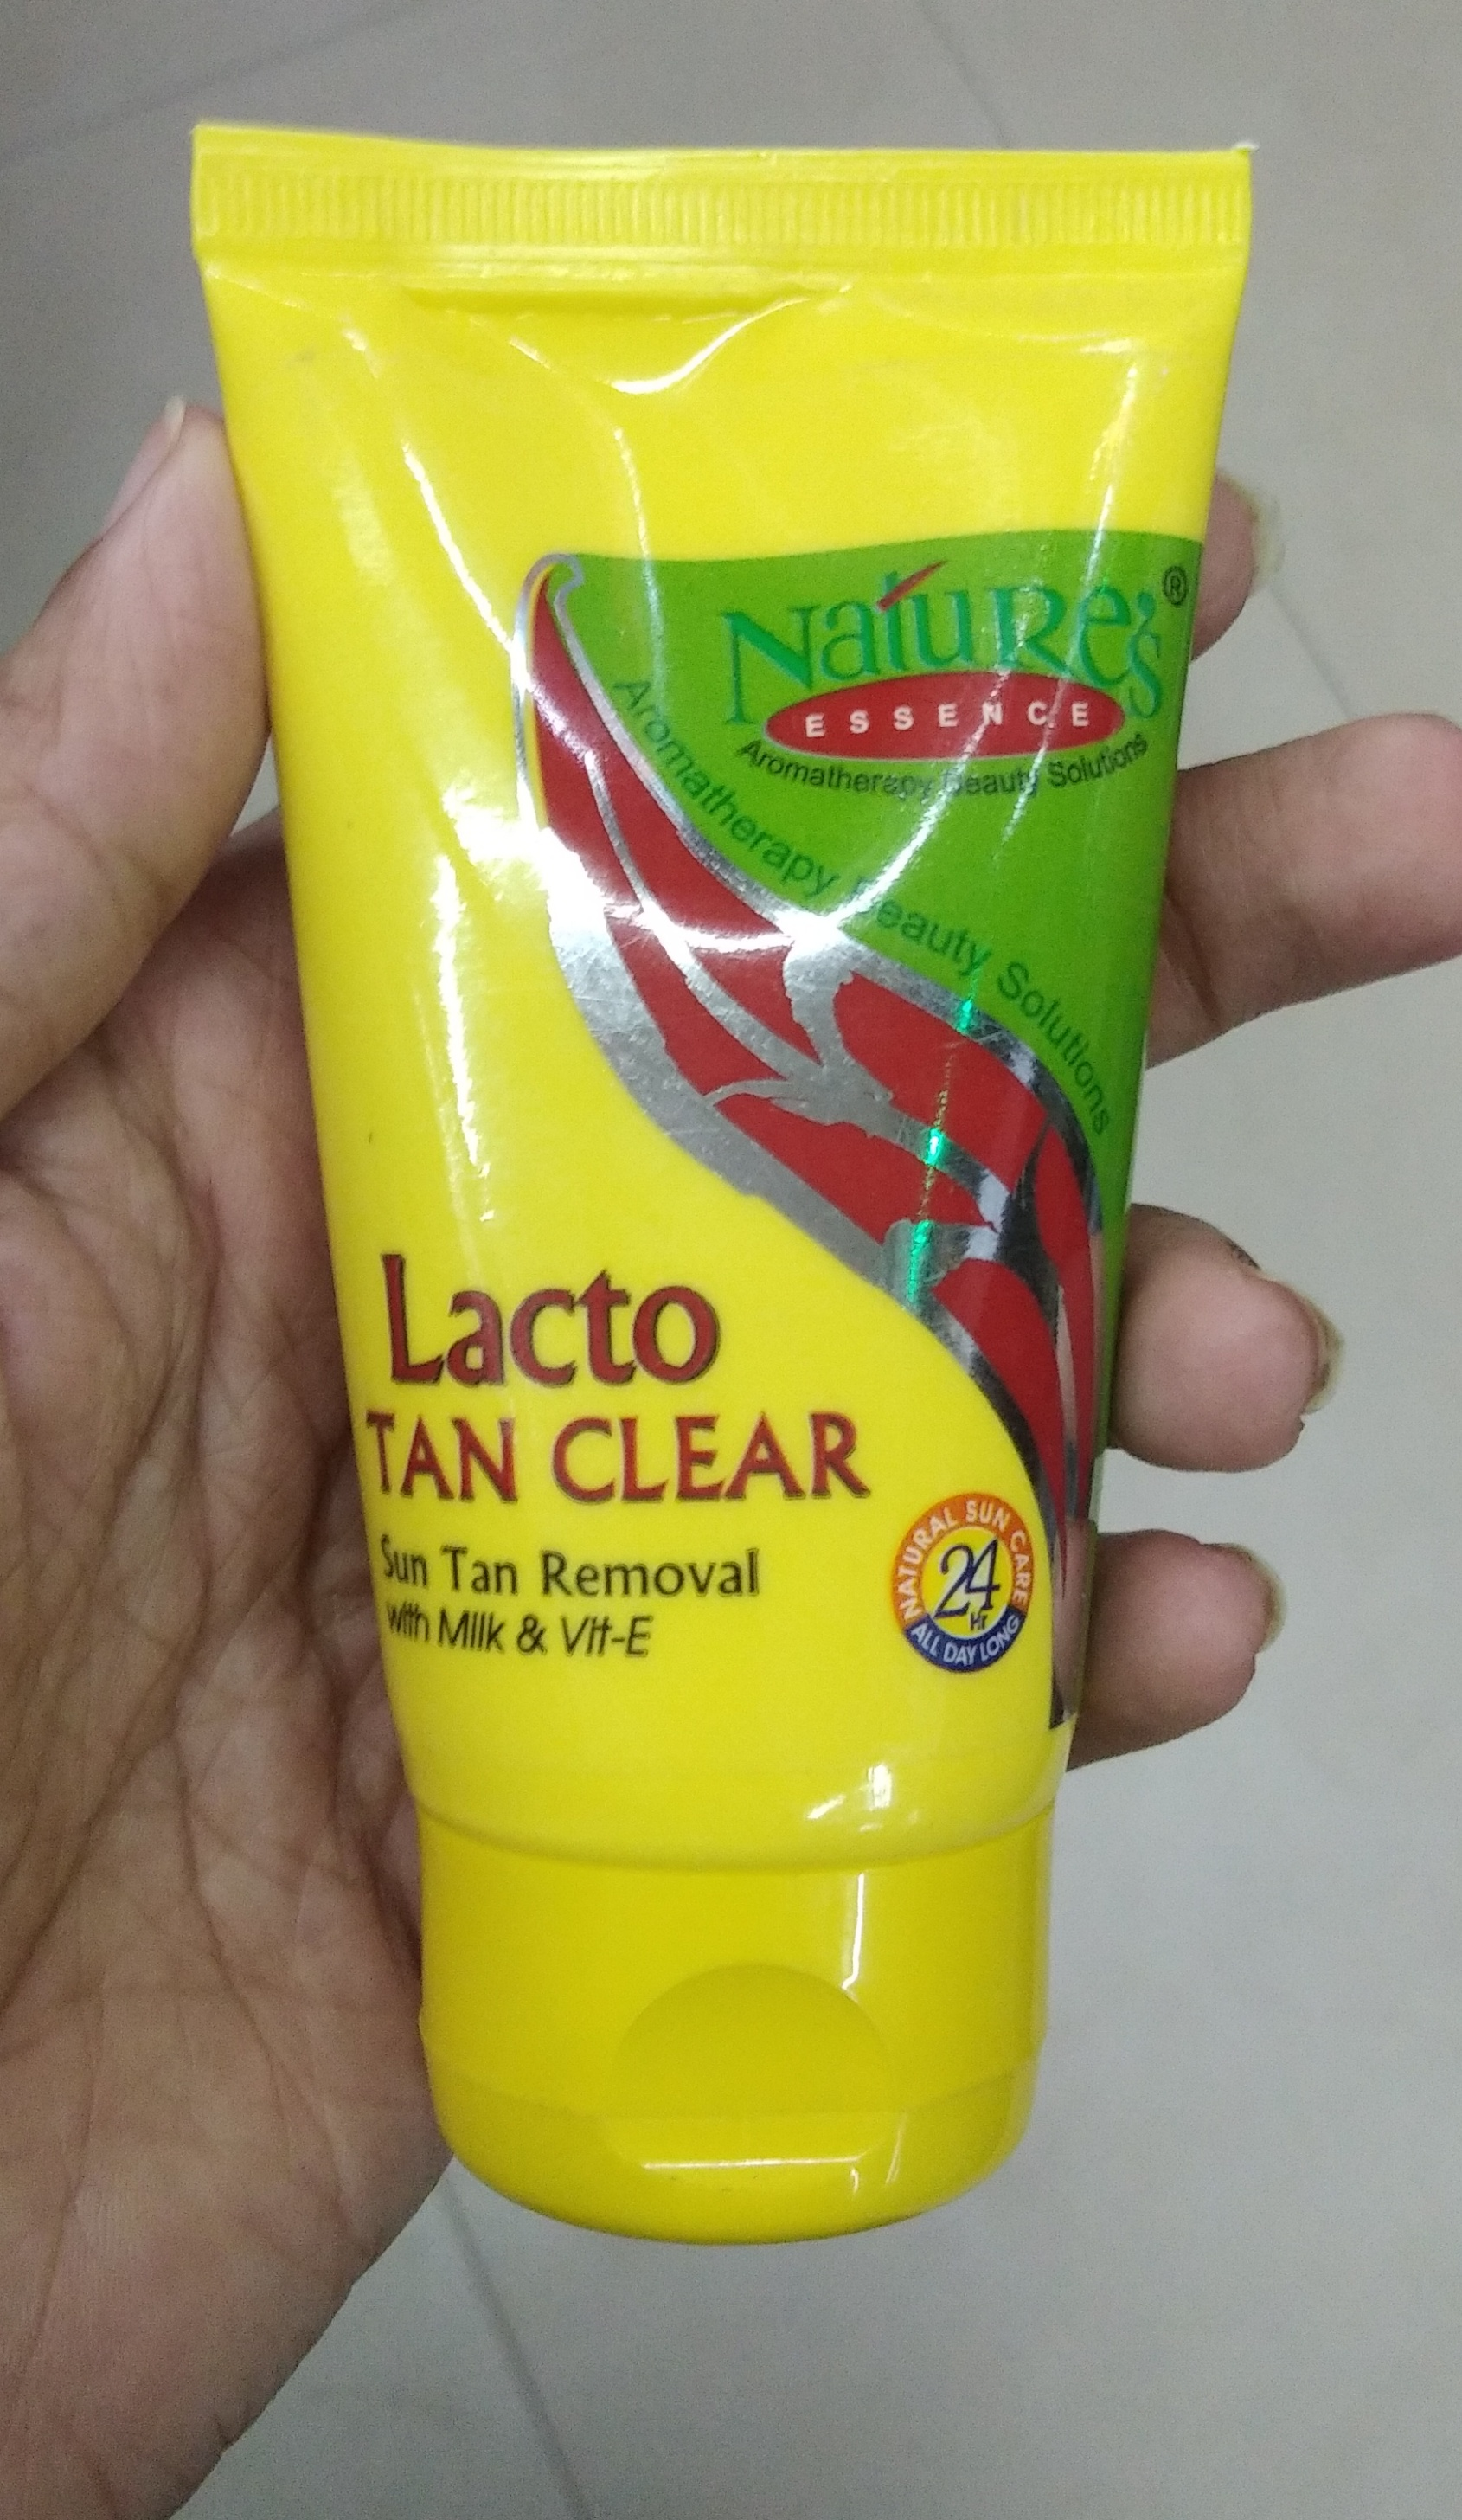 Nature's Essence Lacto Tan Clear-Works good-By Nasreen-2